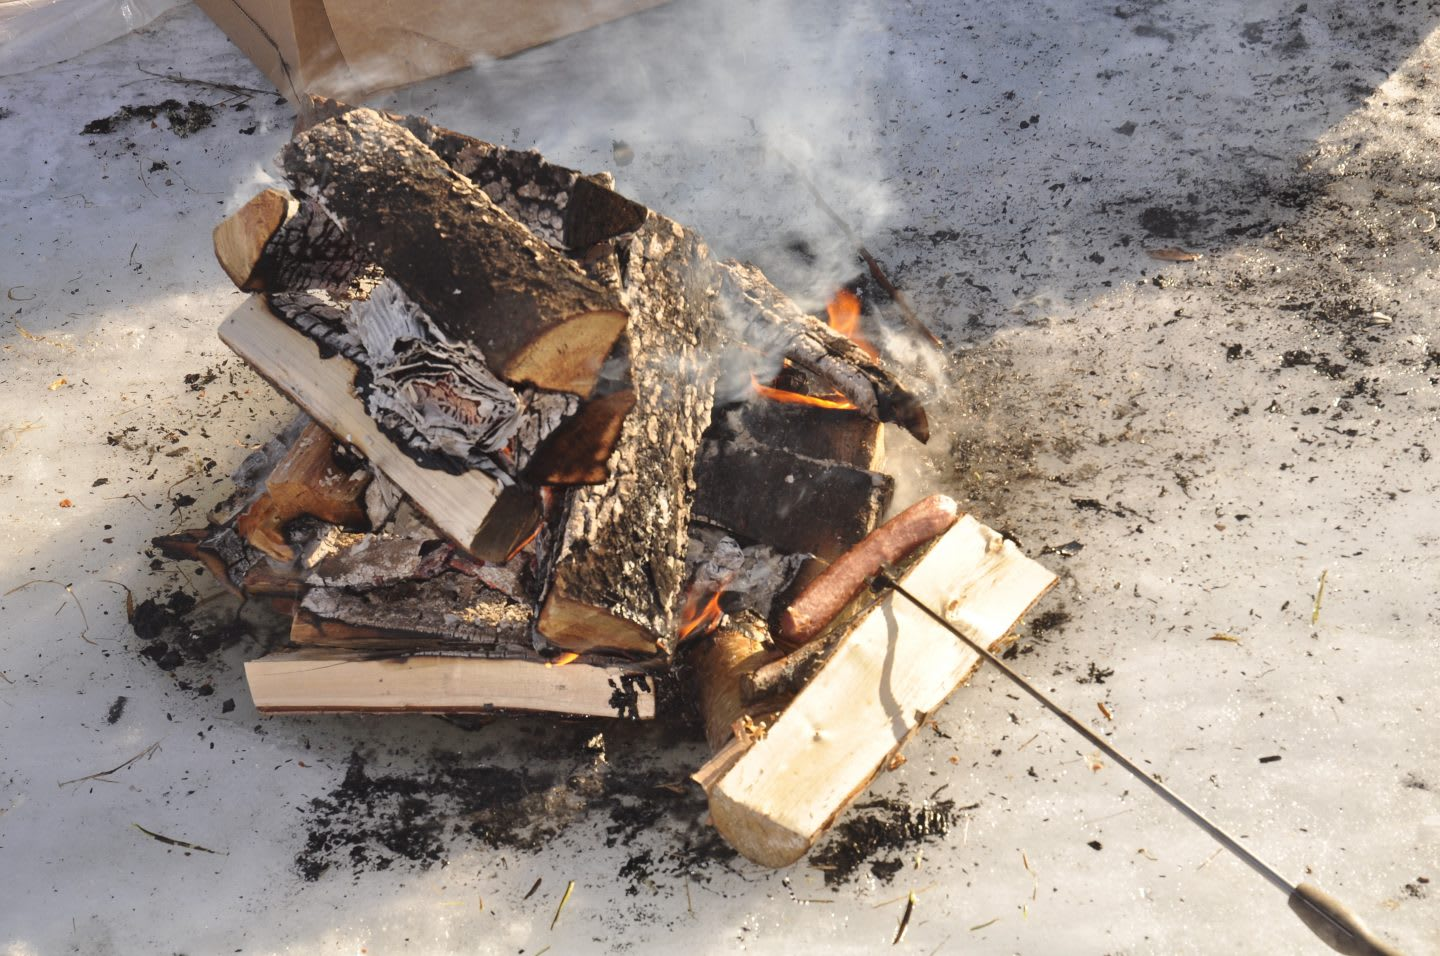 Wood fire on ice with hotdog cooking, roasting, warmth, heat